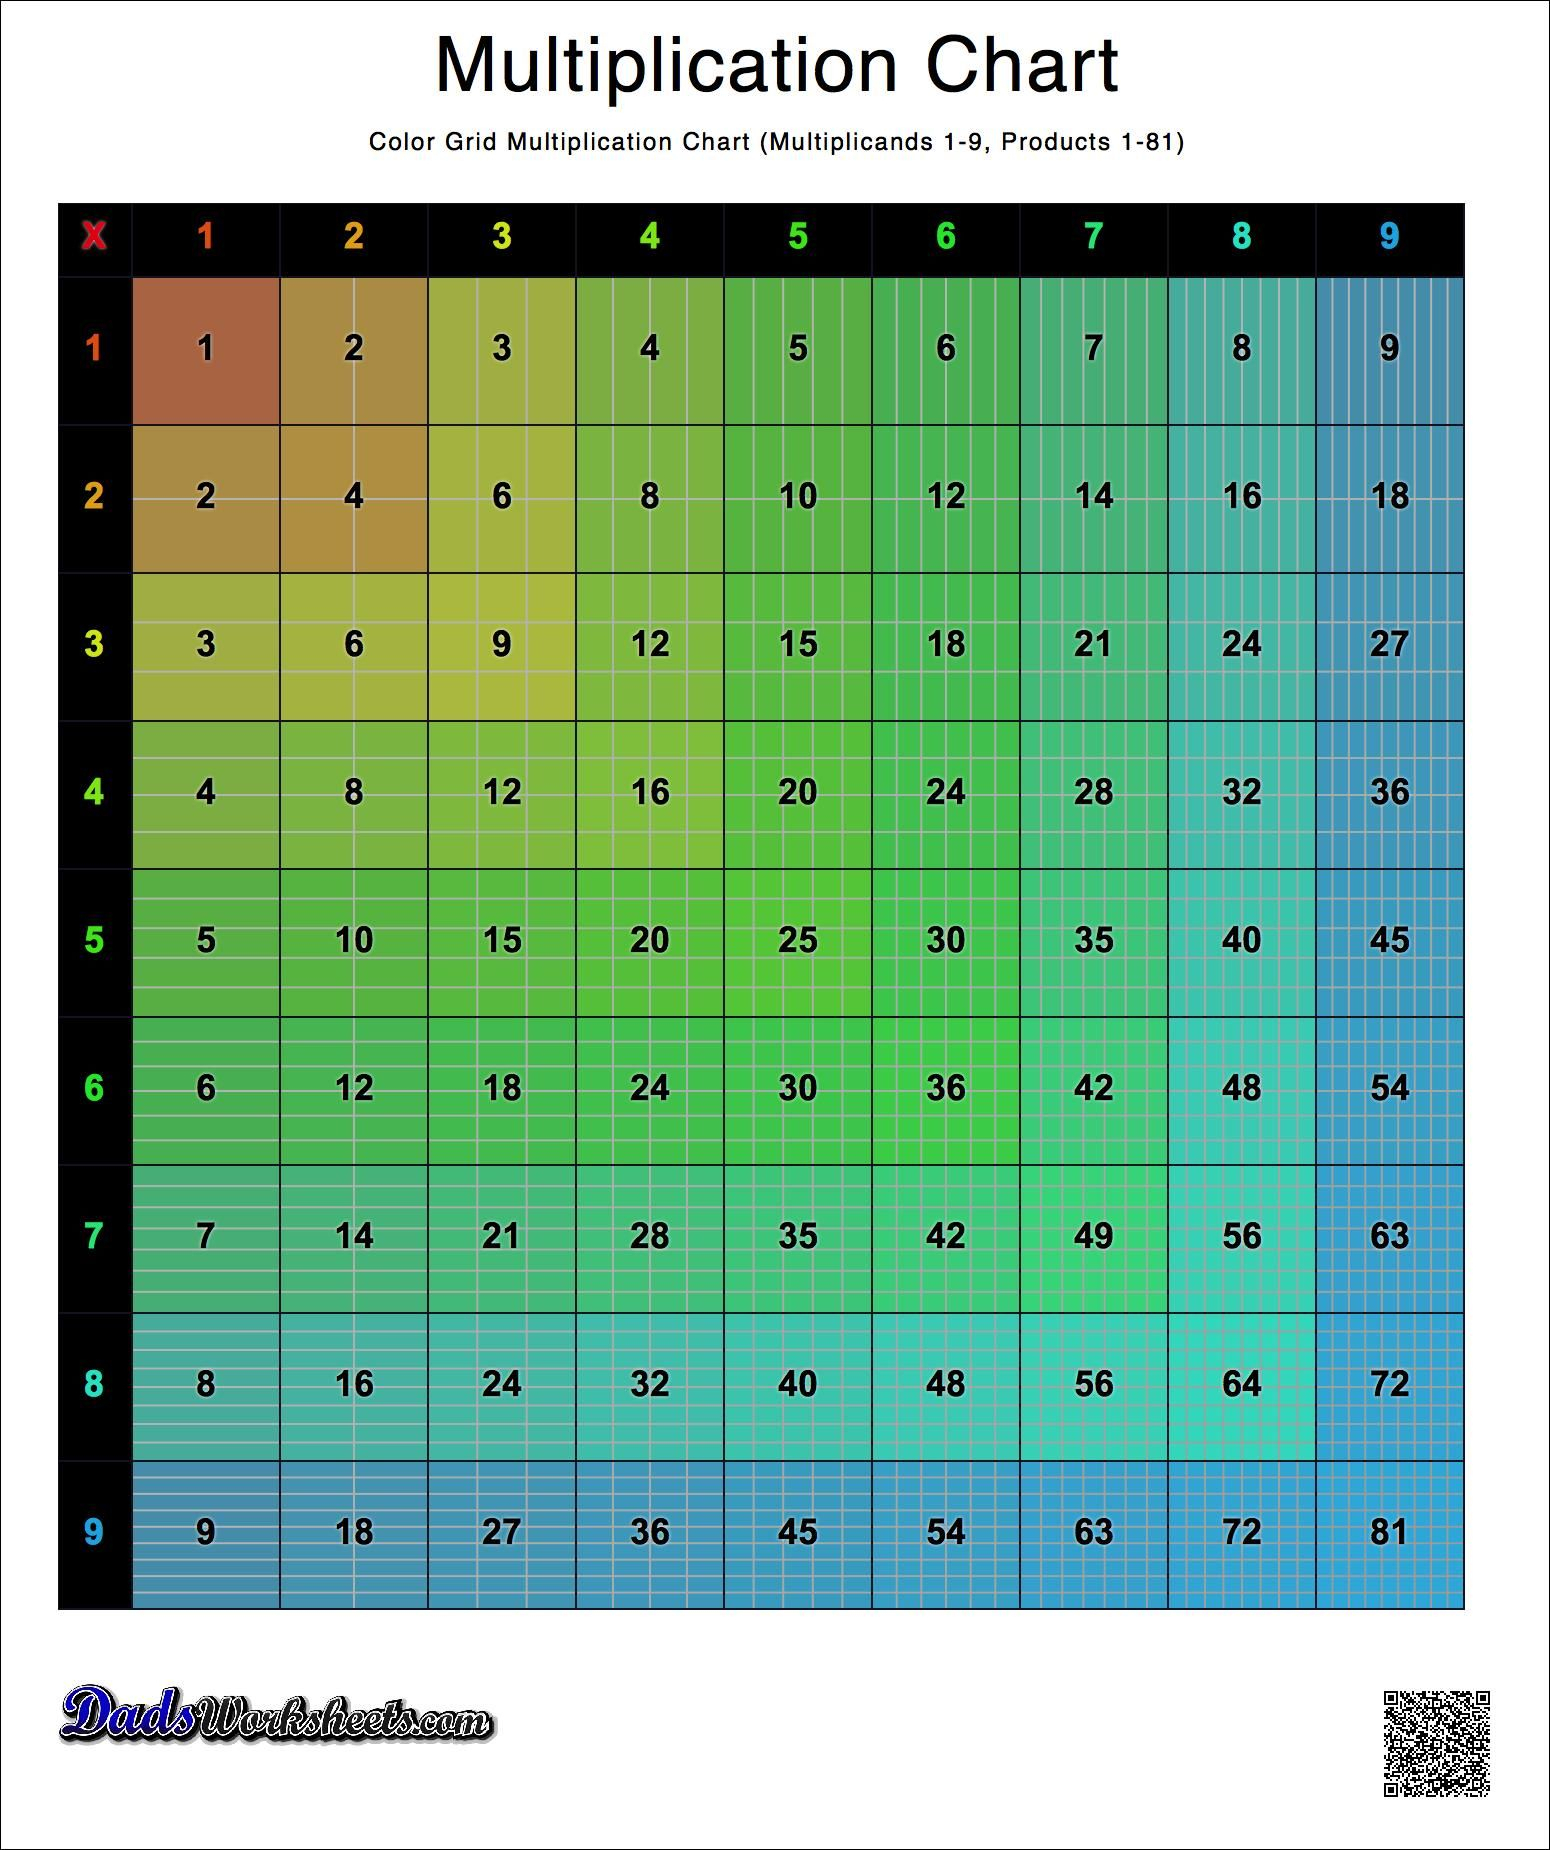 Colored Grid Multiplication Chart, Versions With 1-9, 1-10 regarding Printable Multiplication Chart 1-9